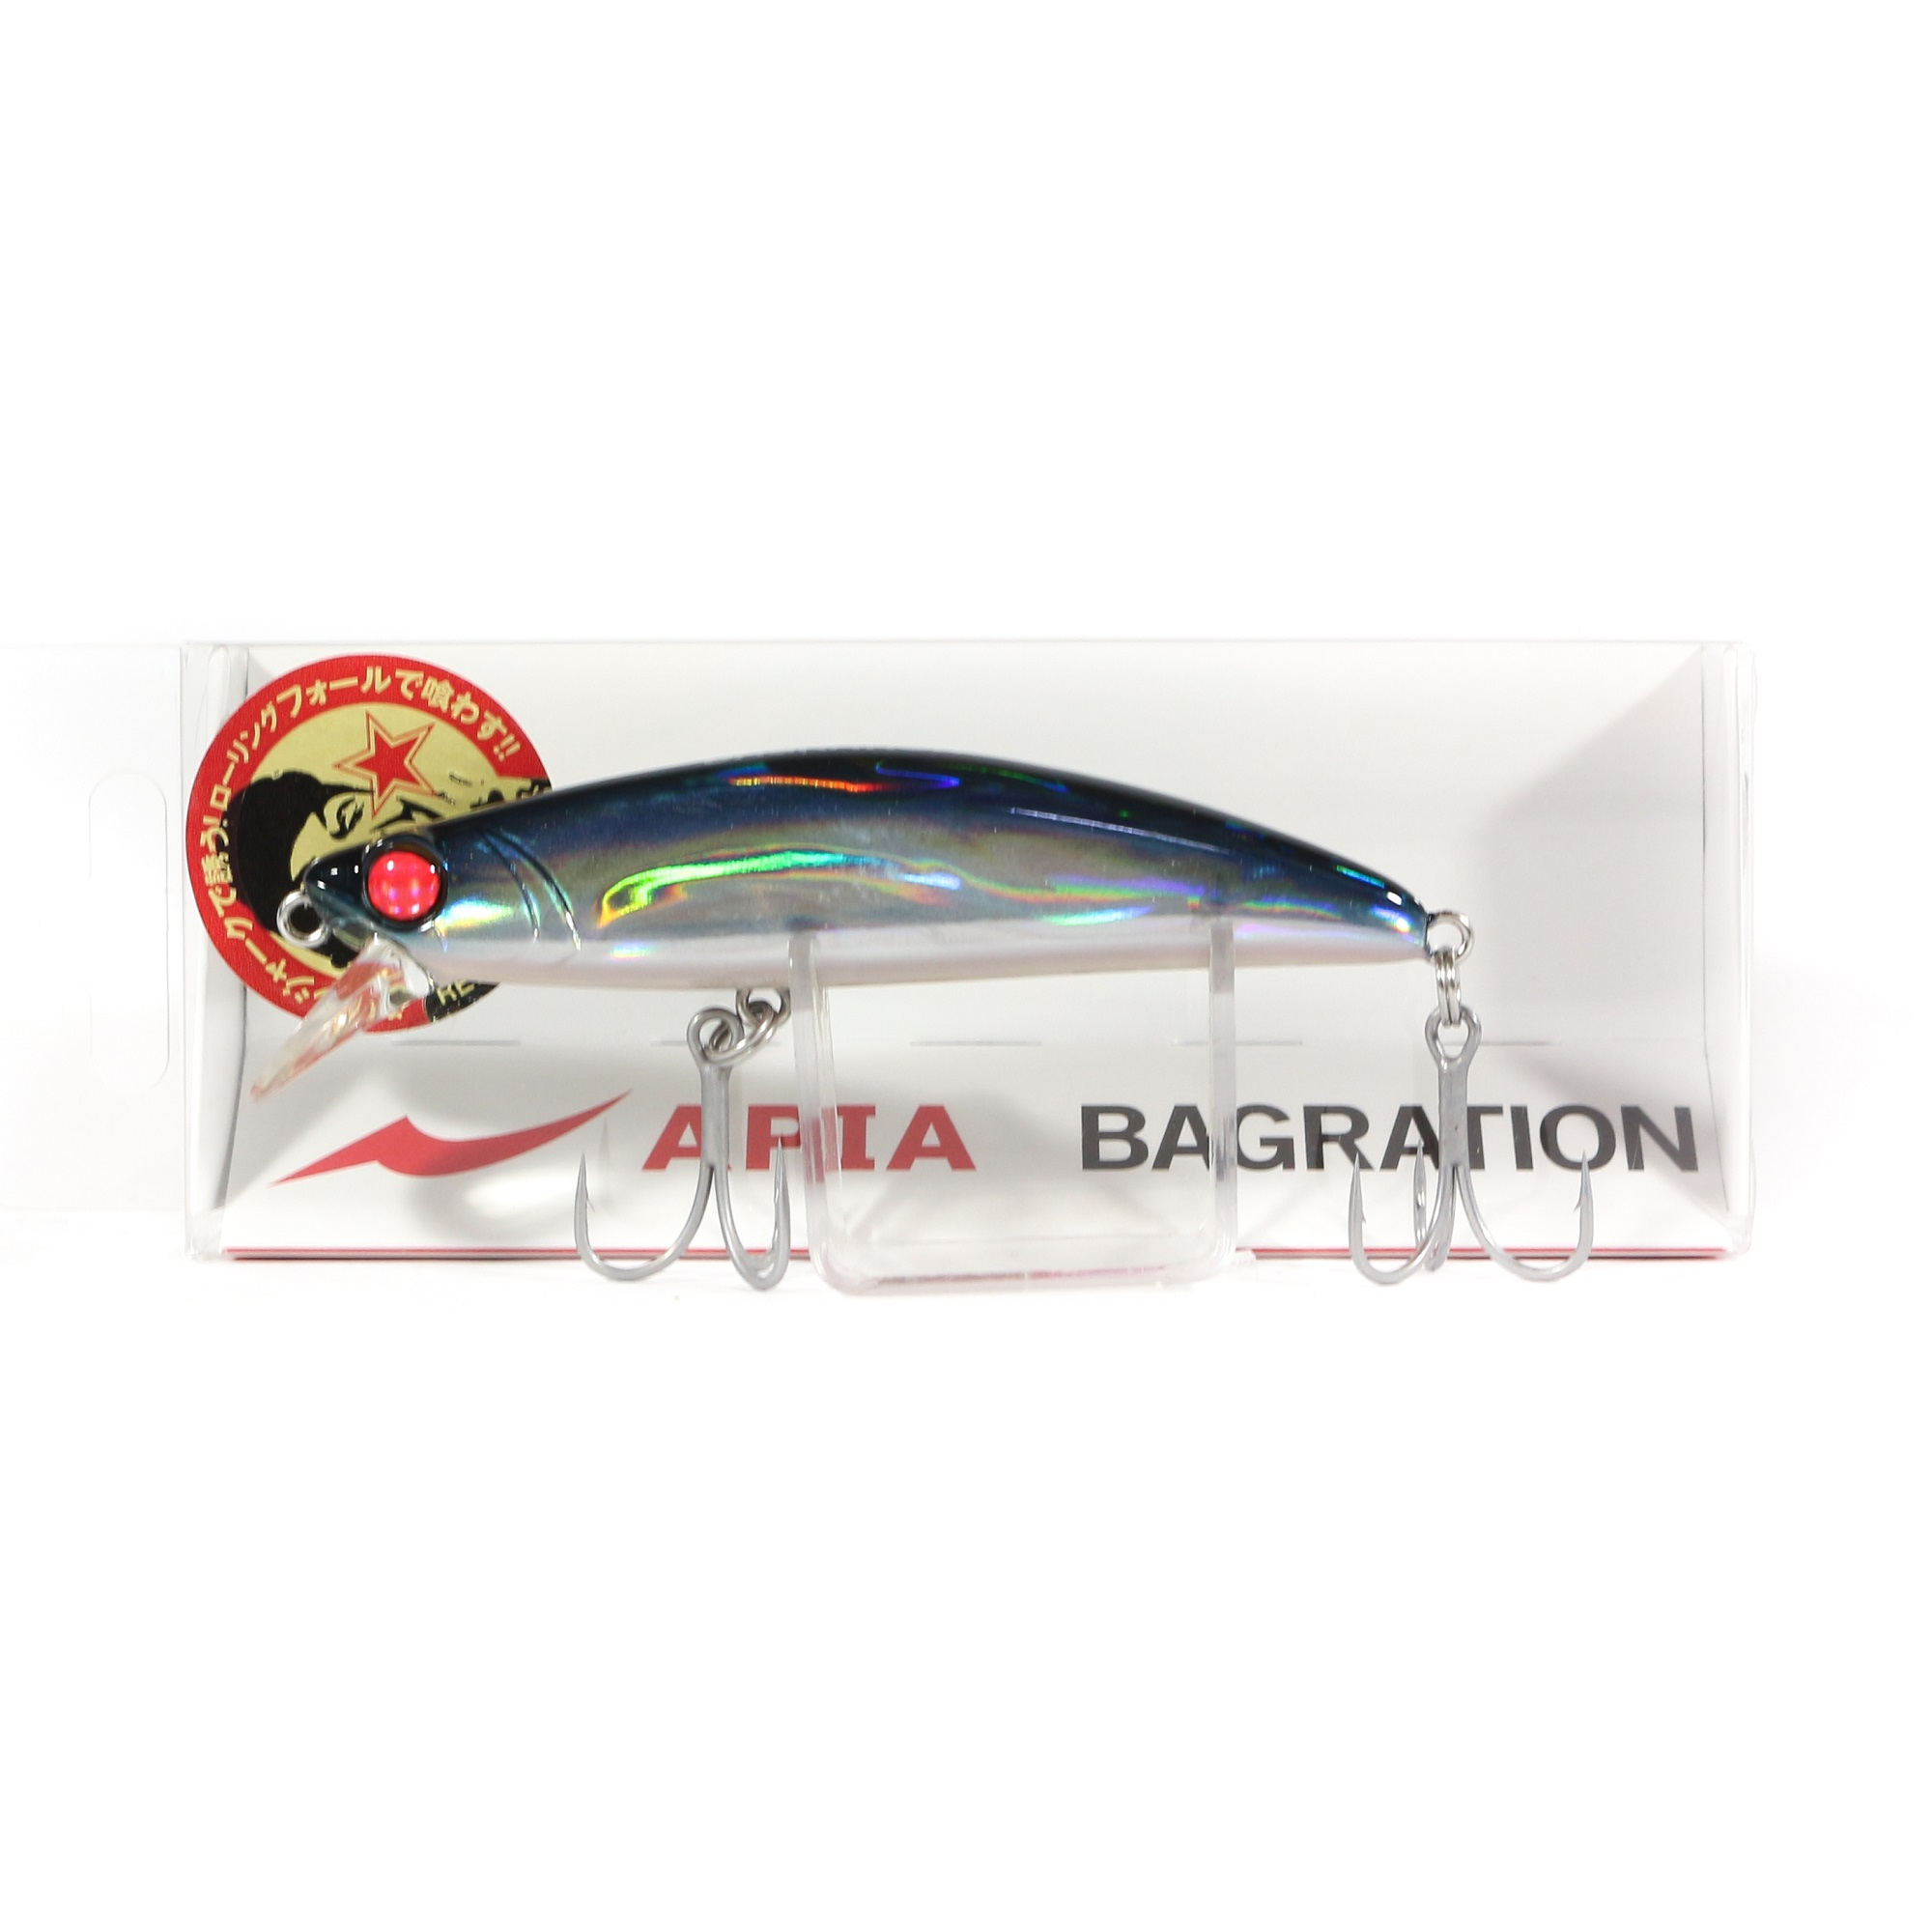 Apia Bagration 80 Sinking Lure 13 (6685)